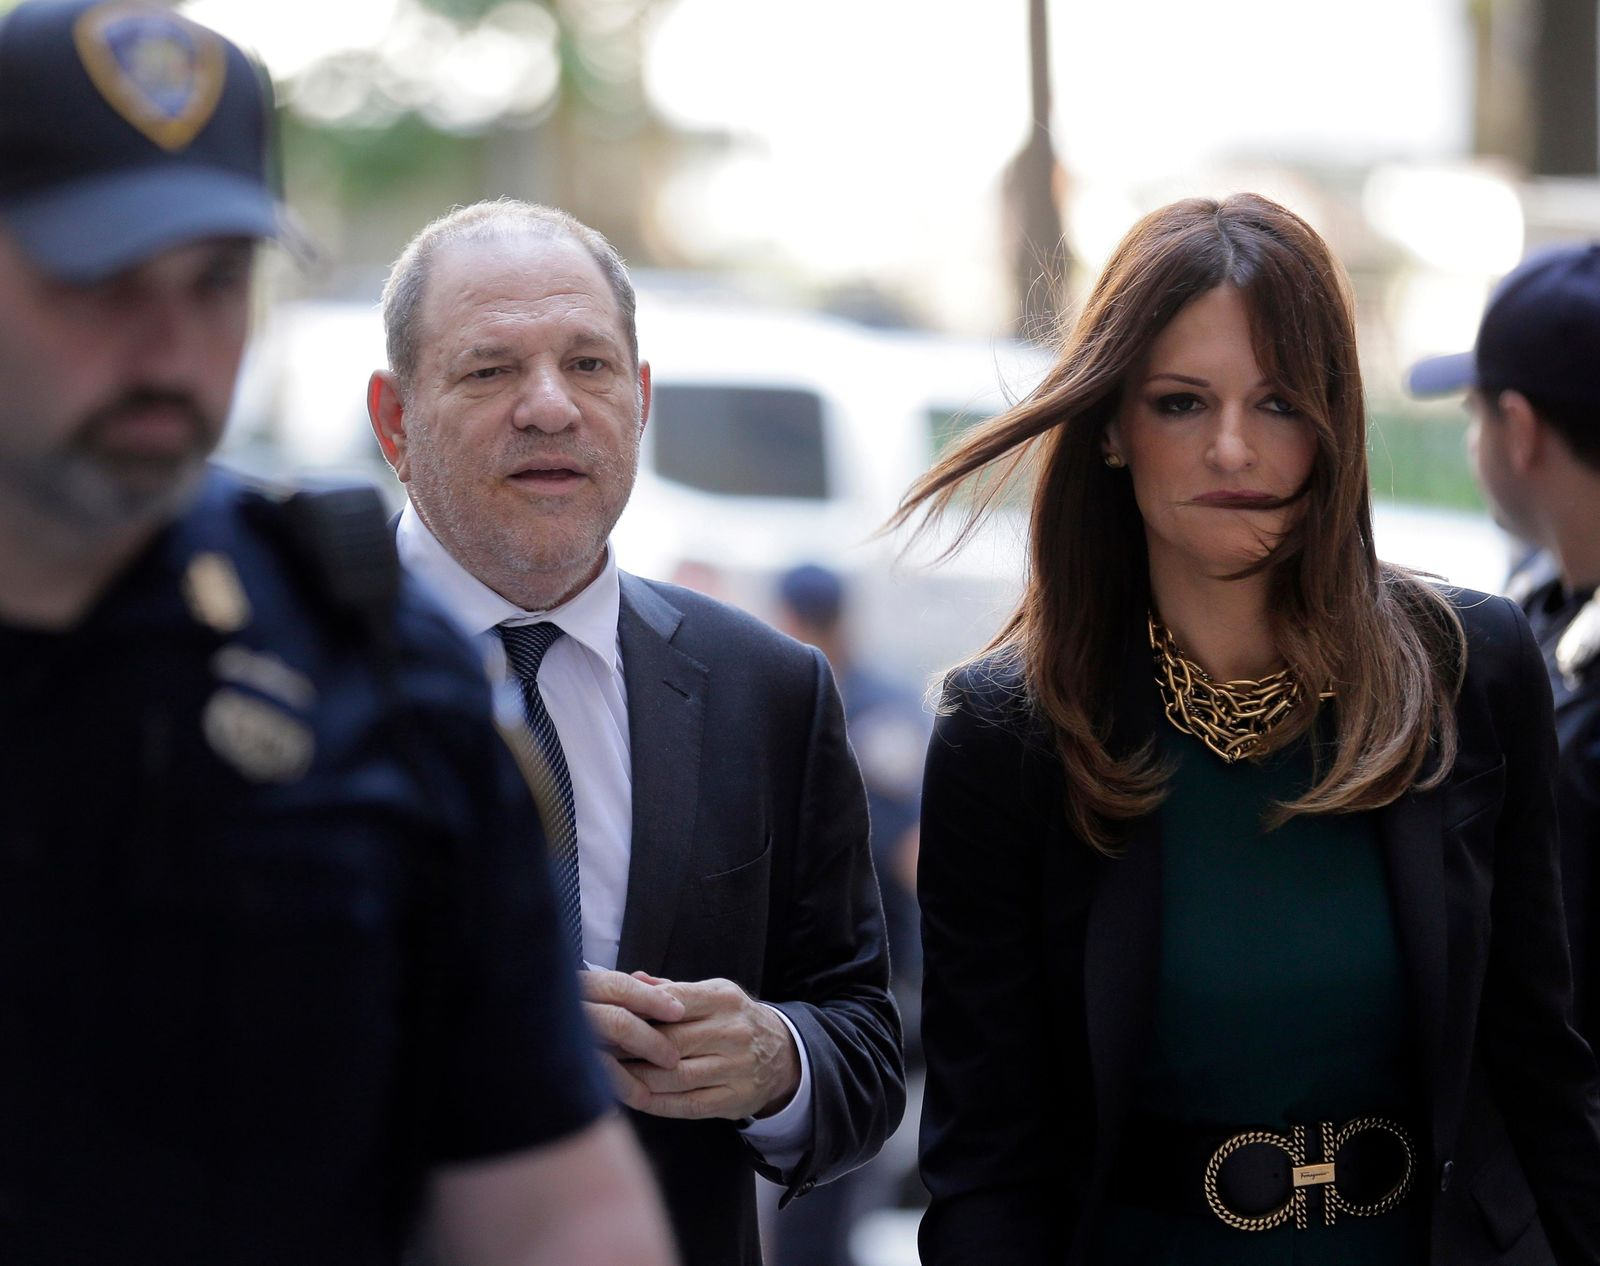 Harvey Weinstein, left, and attorney Donna Rotunno arrive at court for a hearing related to his sexual assault case, Thursday, July 11, 2019,  in New York.{ } (AP Photo/Seth Wenig)